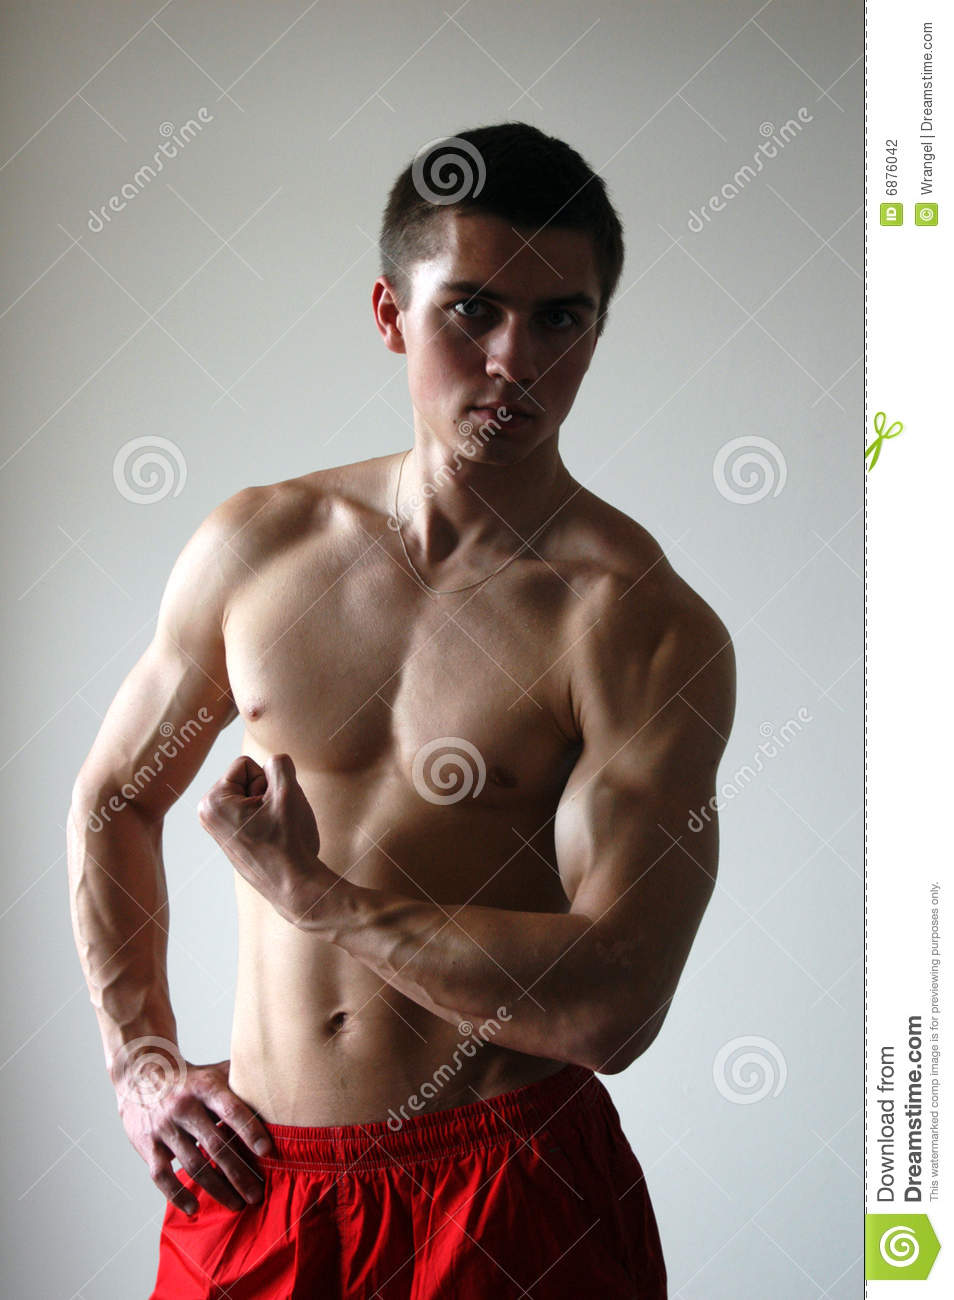 Muscular man flexing his bicep